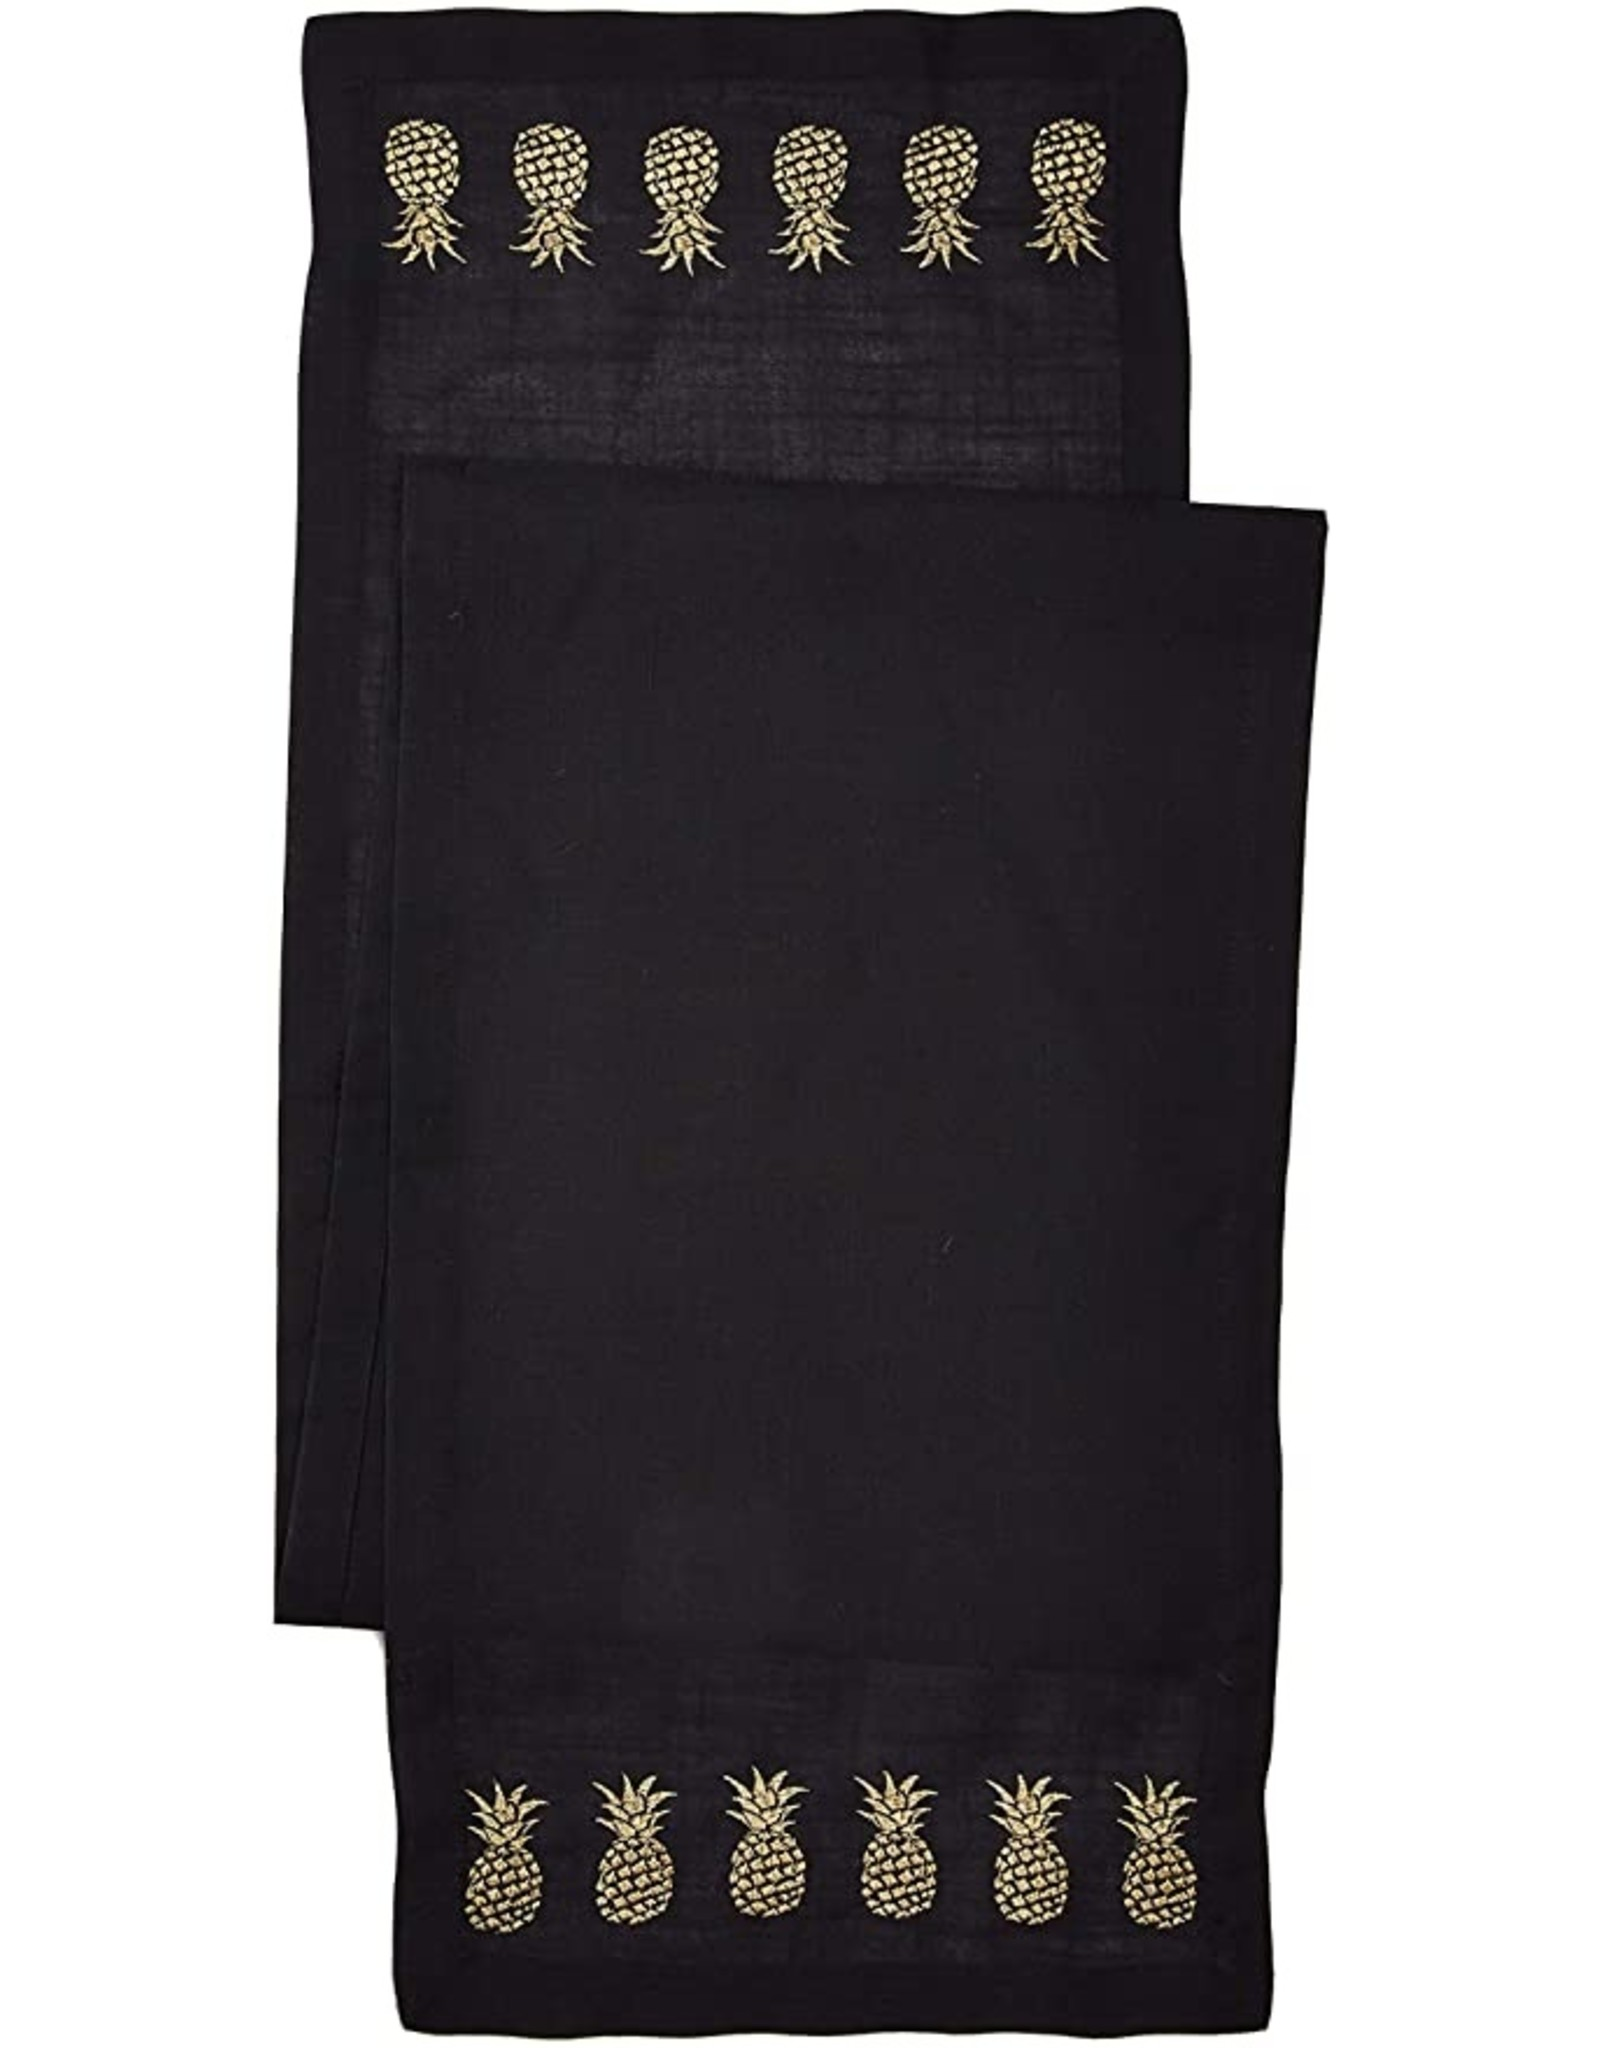 Design Imports DI Black/Gold Pineapple Embroidered Table Runner